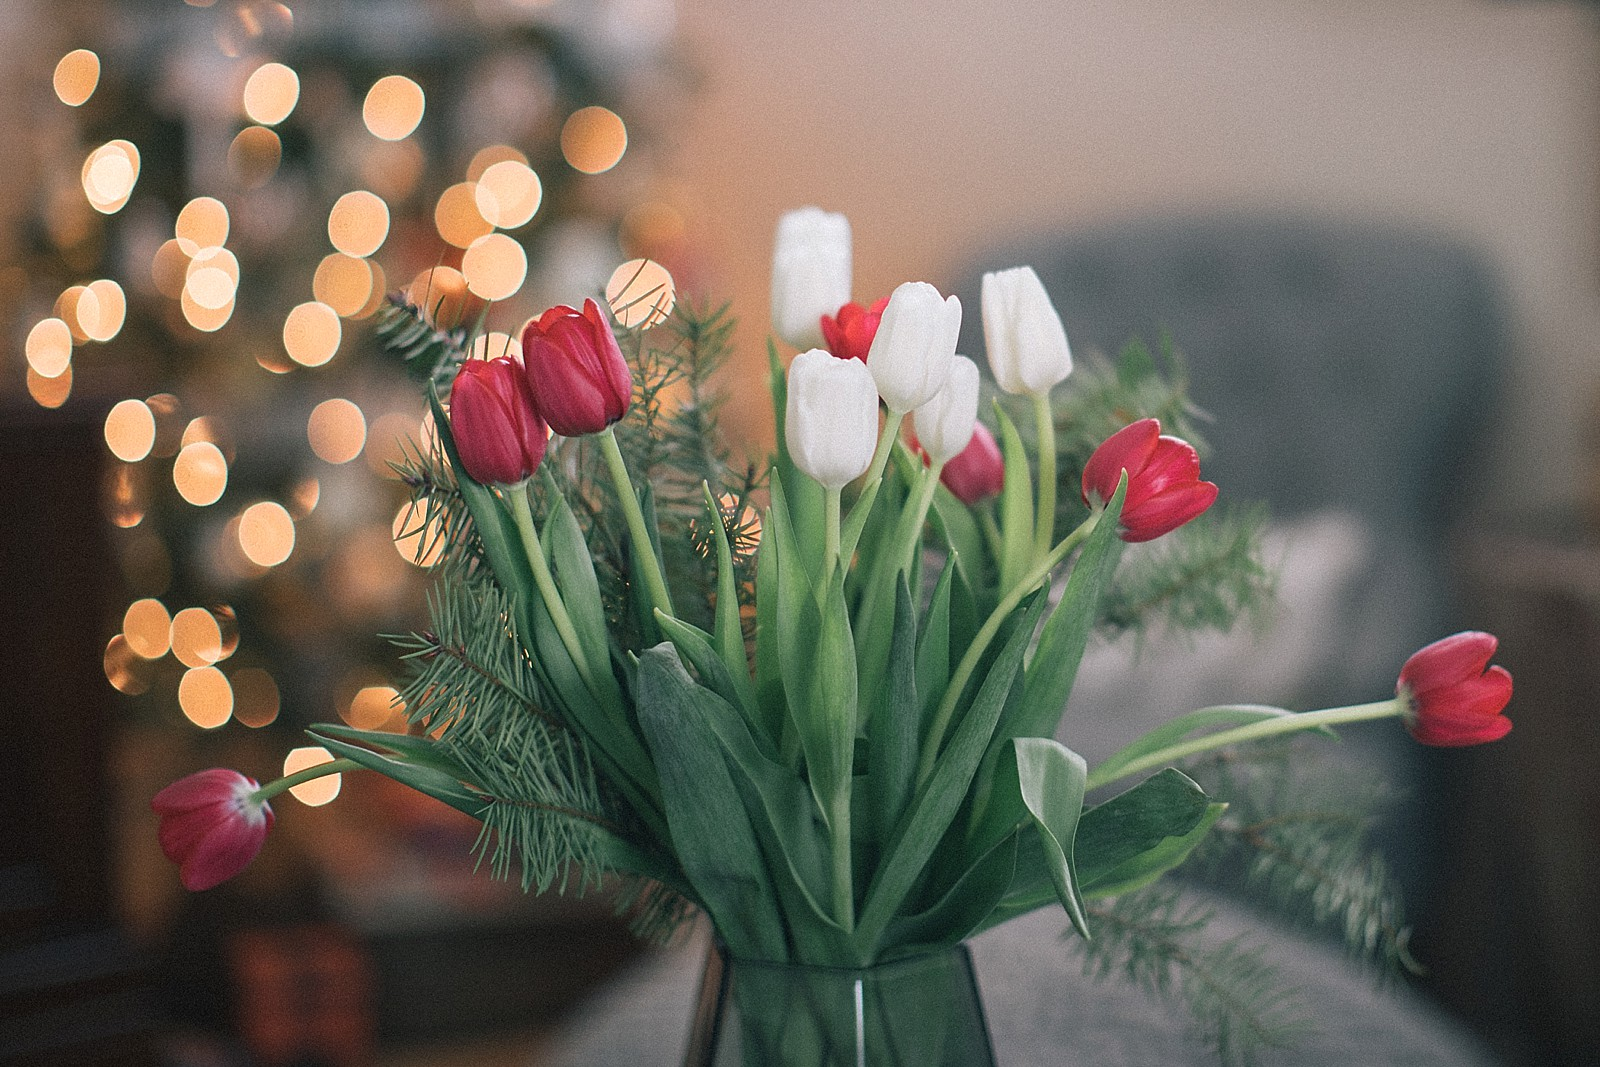 proflowers-christmas-how-to-assemble-flowers